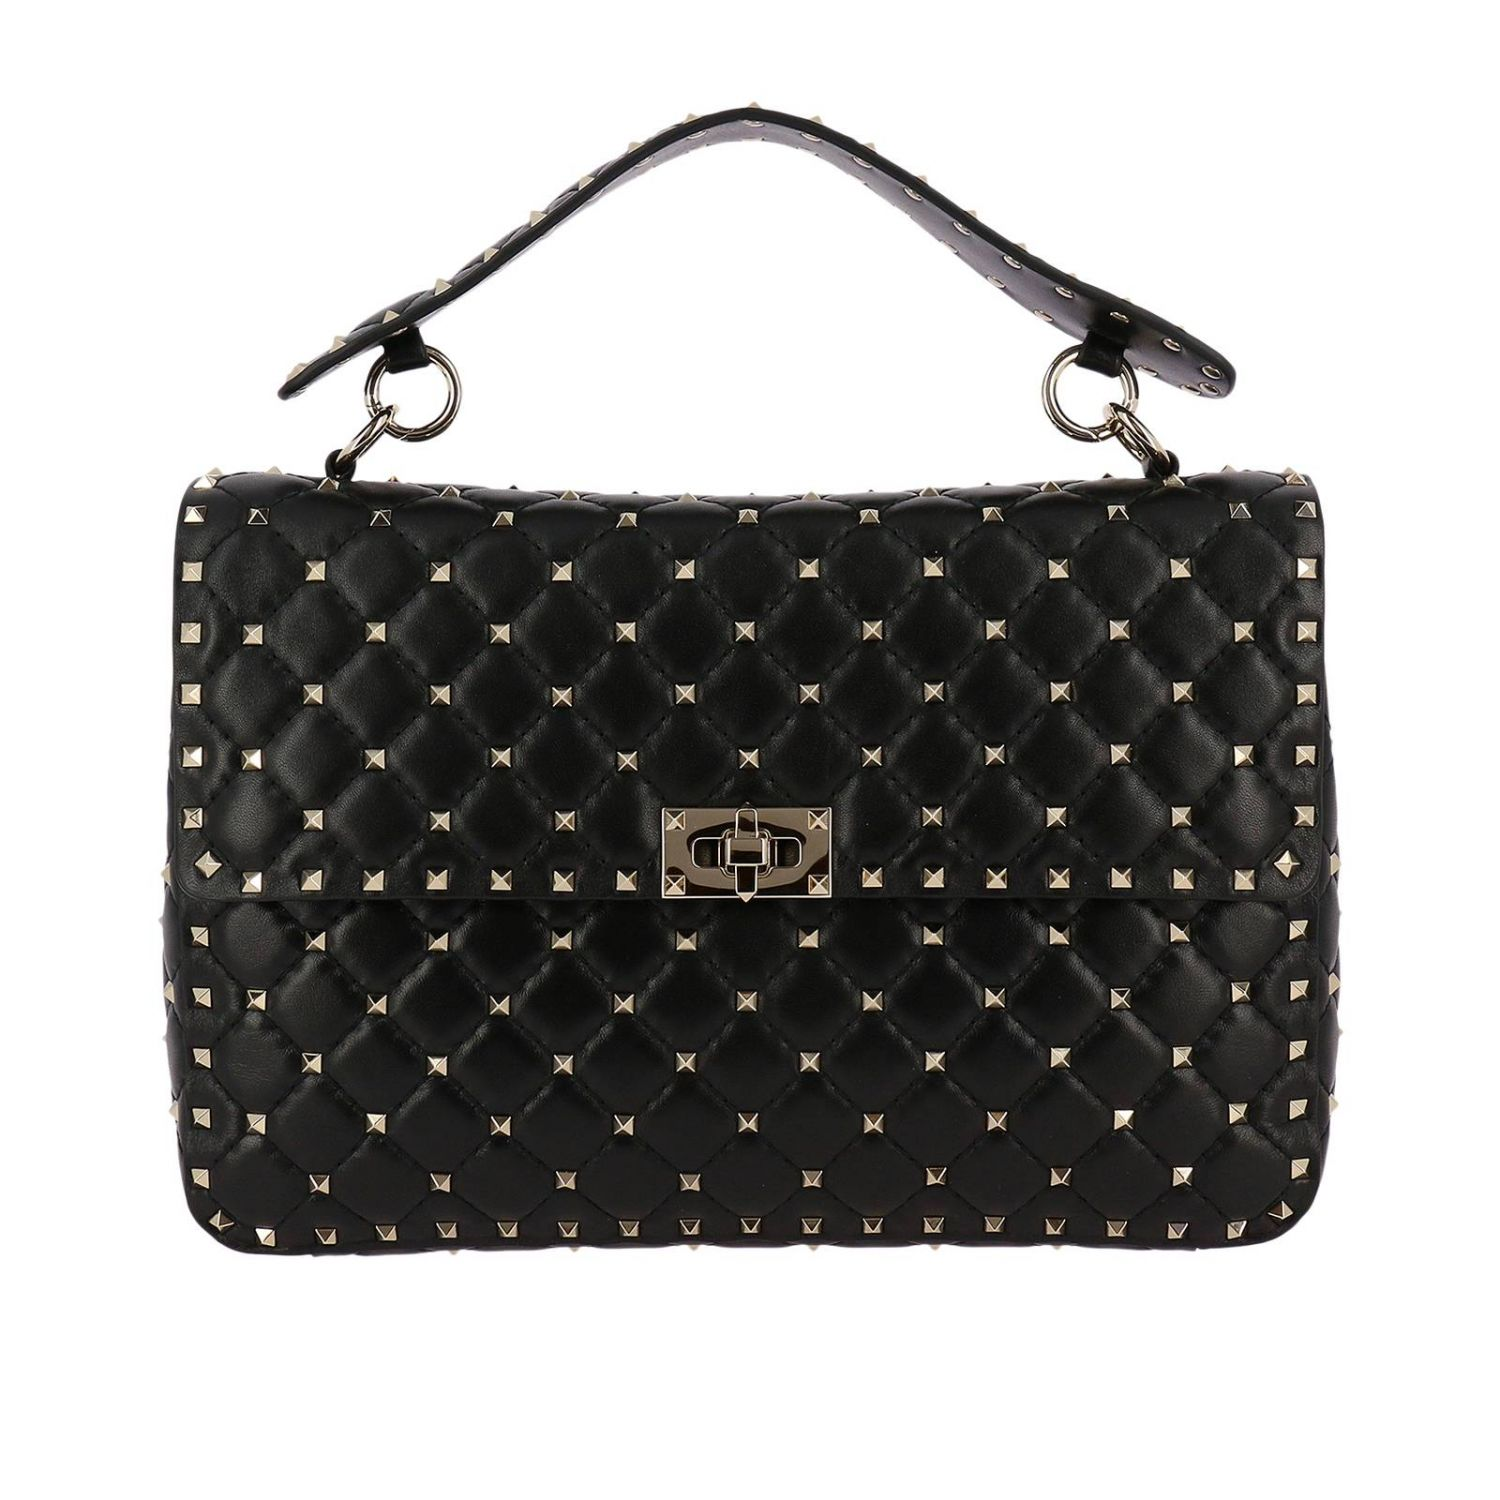 Handbag Valentino Rockstud Spike Large Bag In Genuine Leather With Micro Studs And Sliding Shoulder Strap 8286784